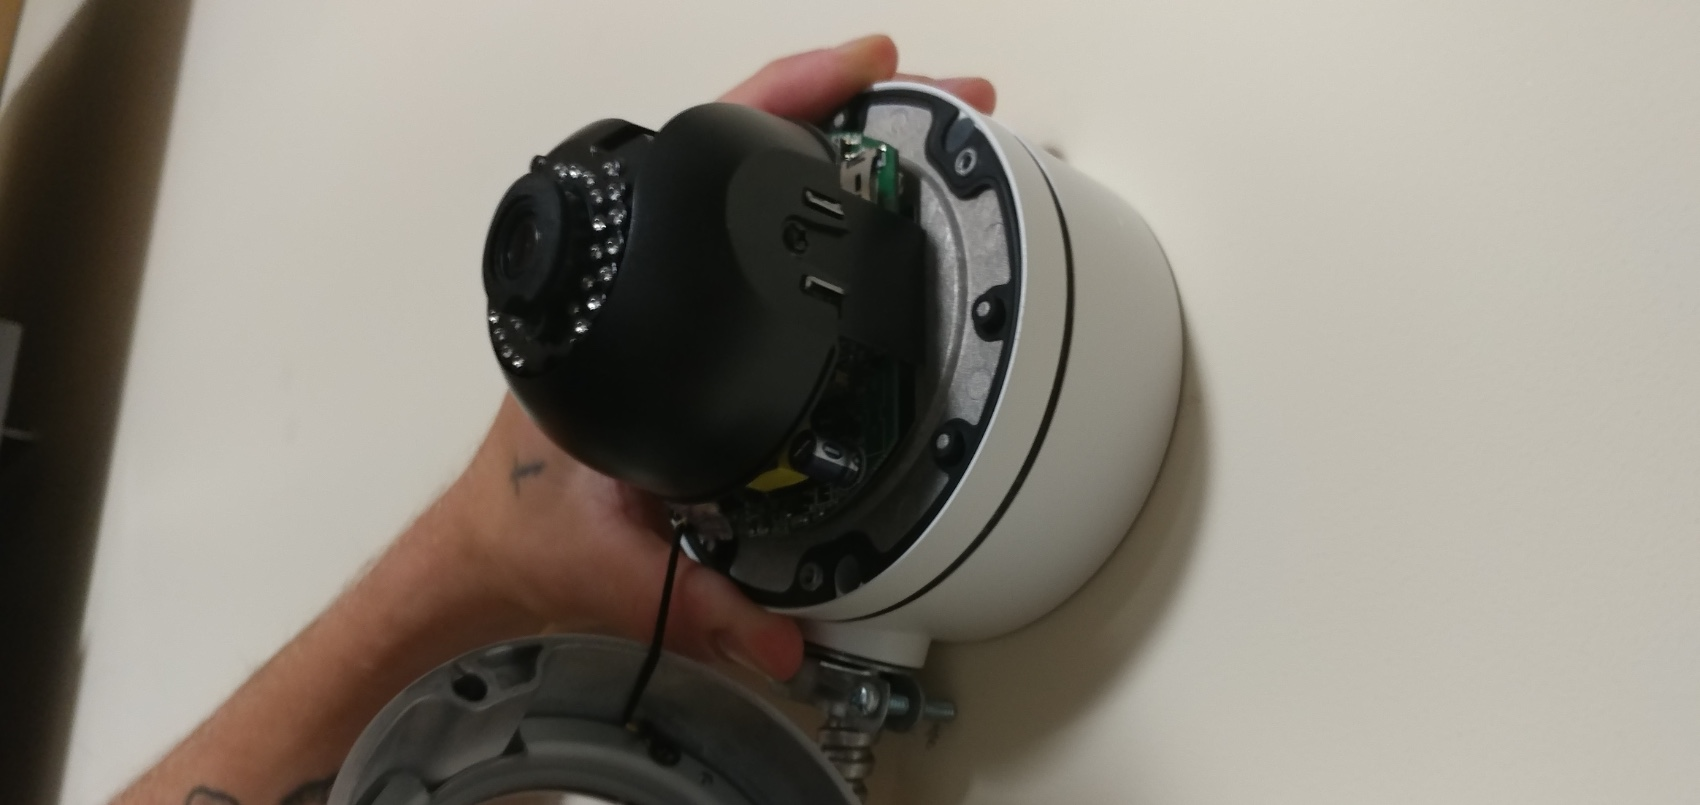 mount camera to electrical box